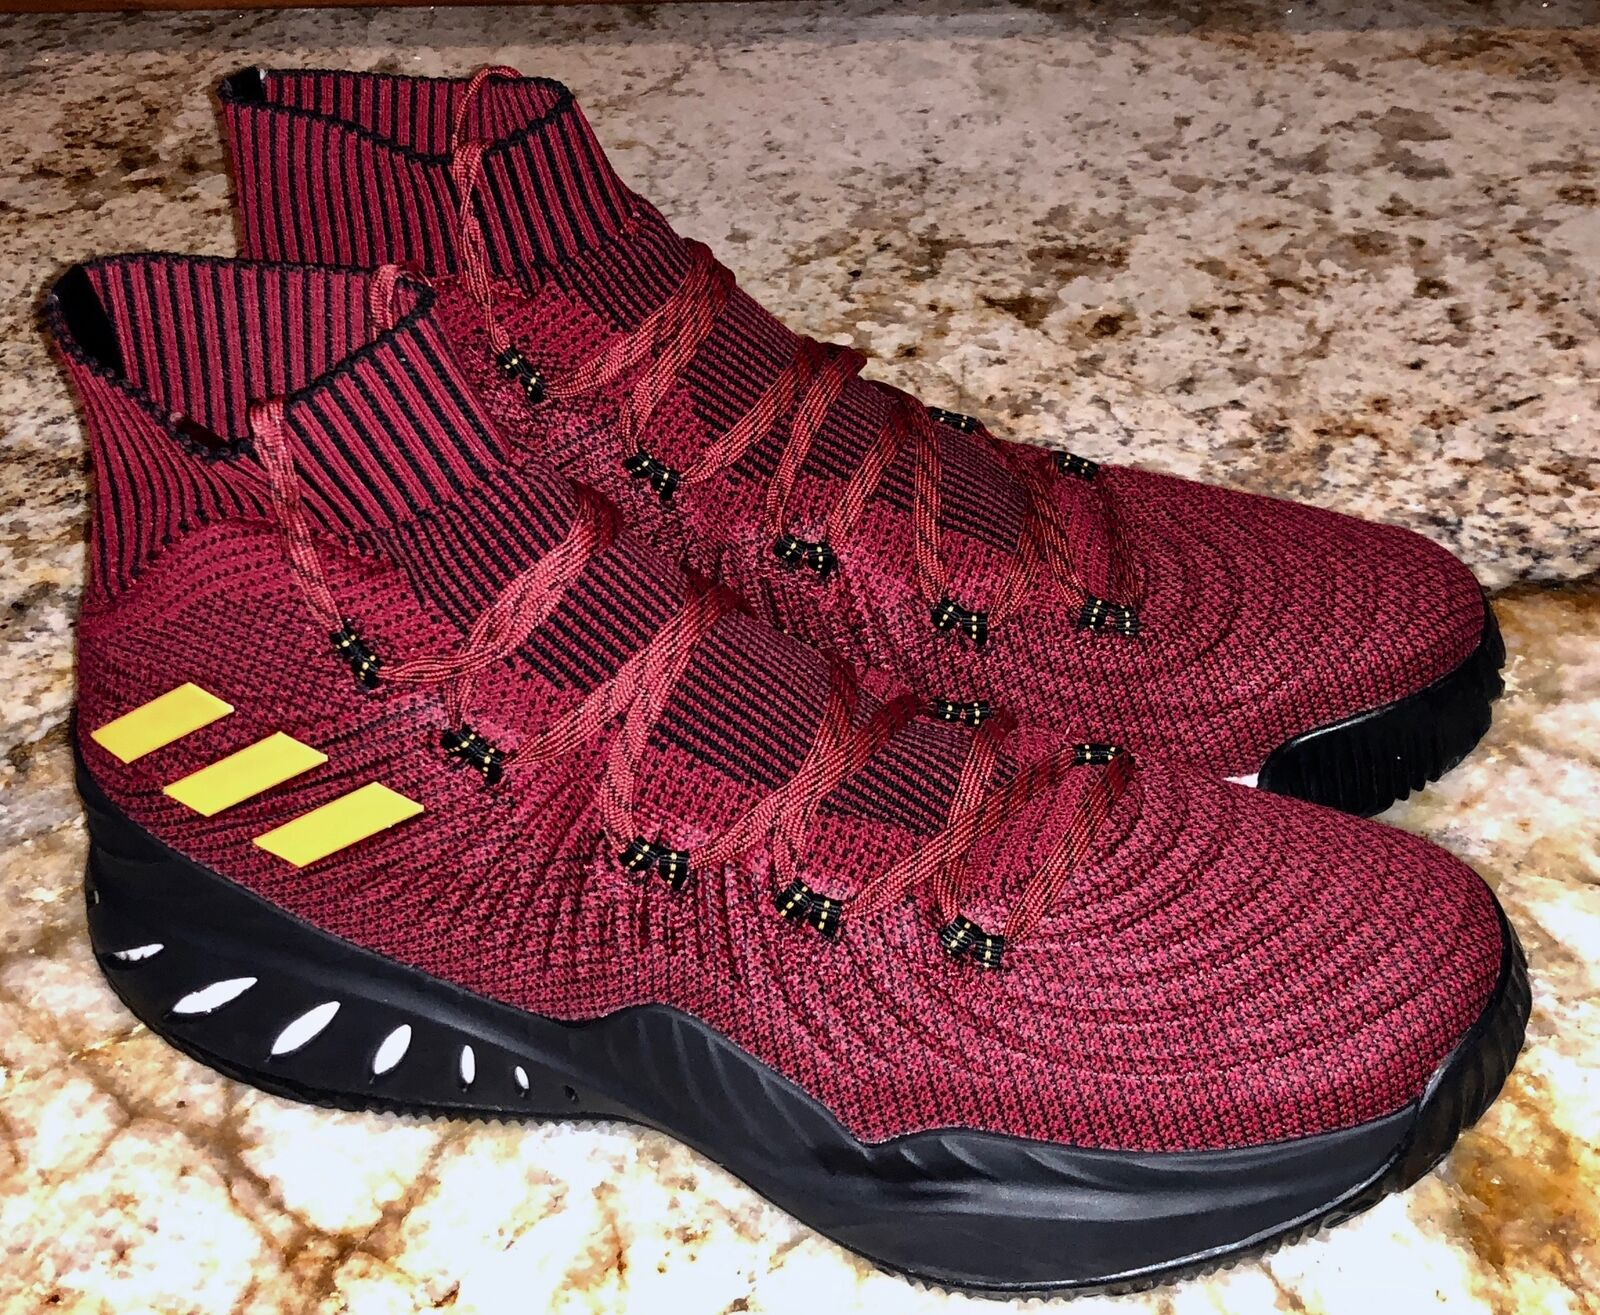 ADIDAS Crazy Explosive Primeknit Maroon Miami Heat Basketball shoes NEW Mens 14